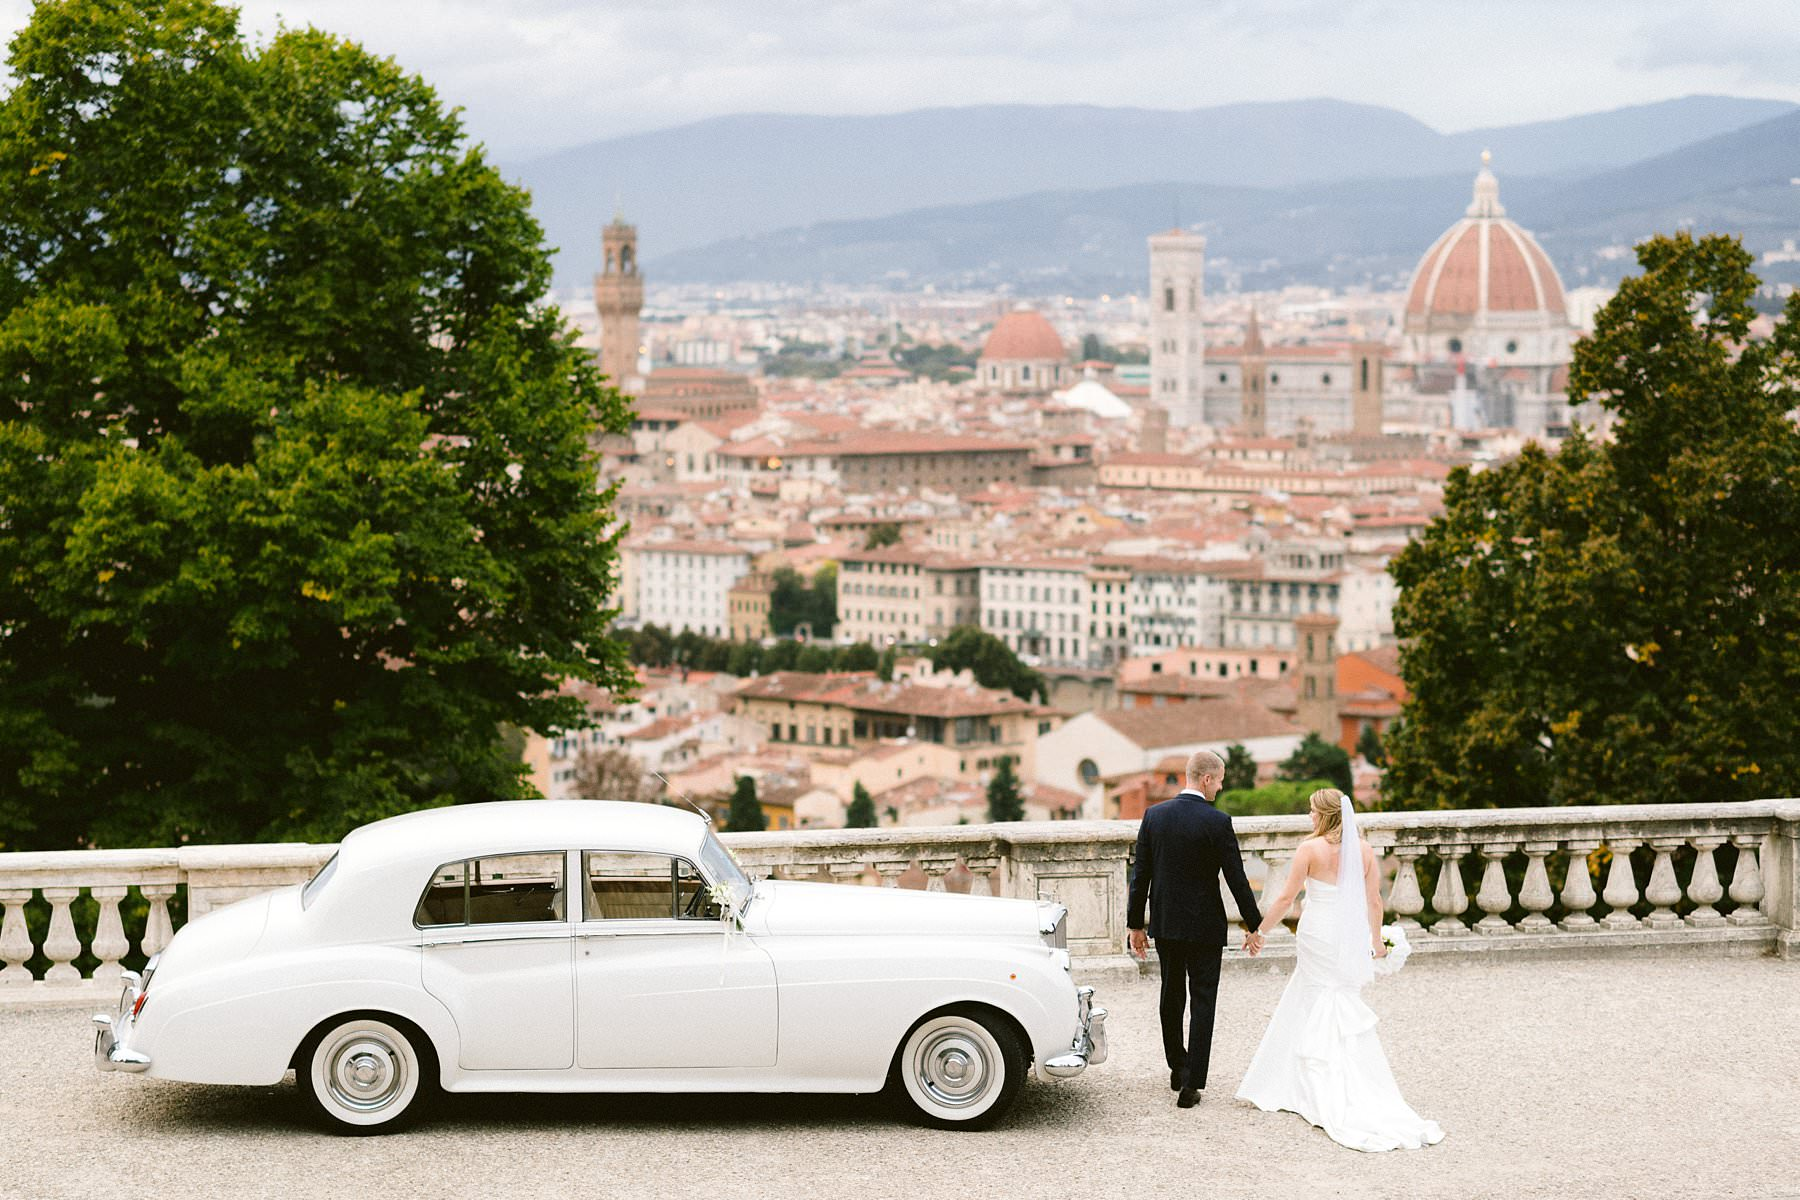 Beth and Evan's exquisite wedding: just like a dream. Portraits of the newlyweds in the most iconic and fascinating spots of the city of Florence, such as the breathtaking San Miniato al Monte and the romantic Ponte Vecchio